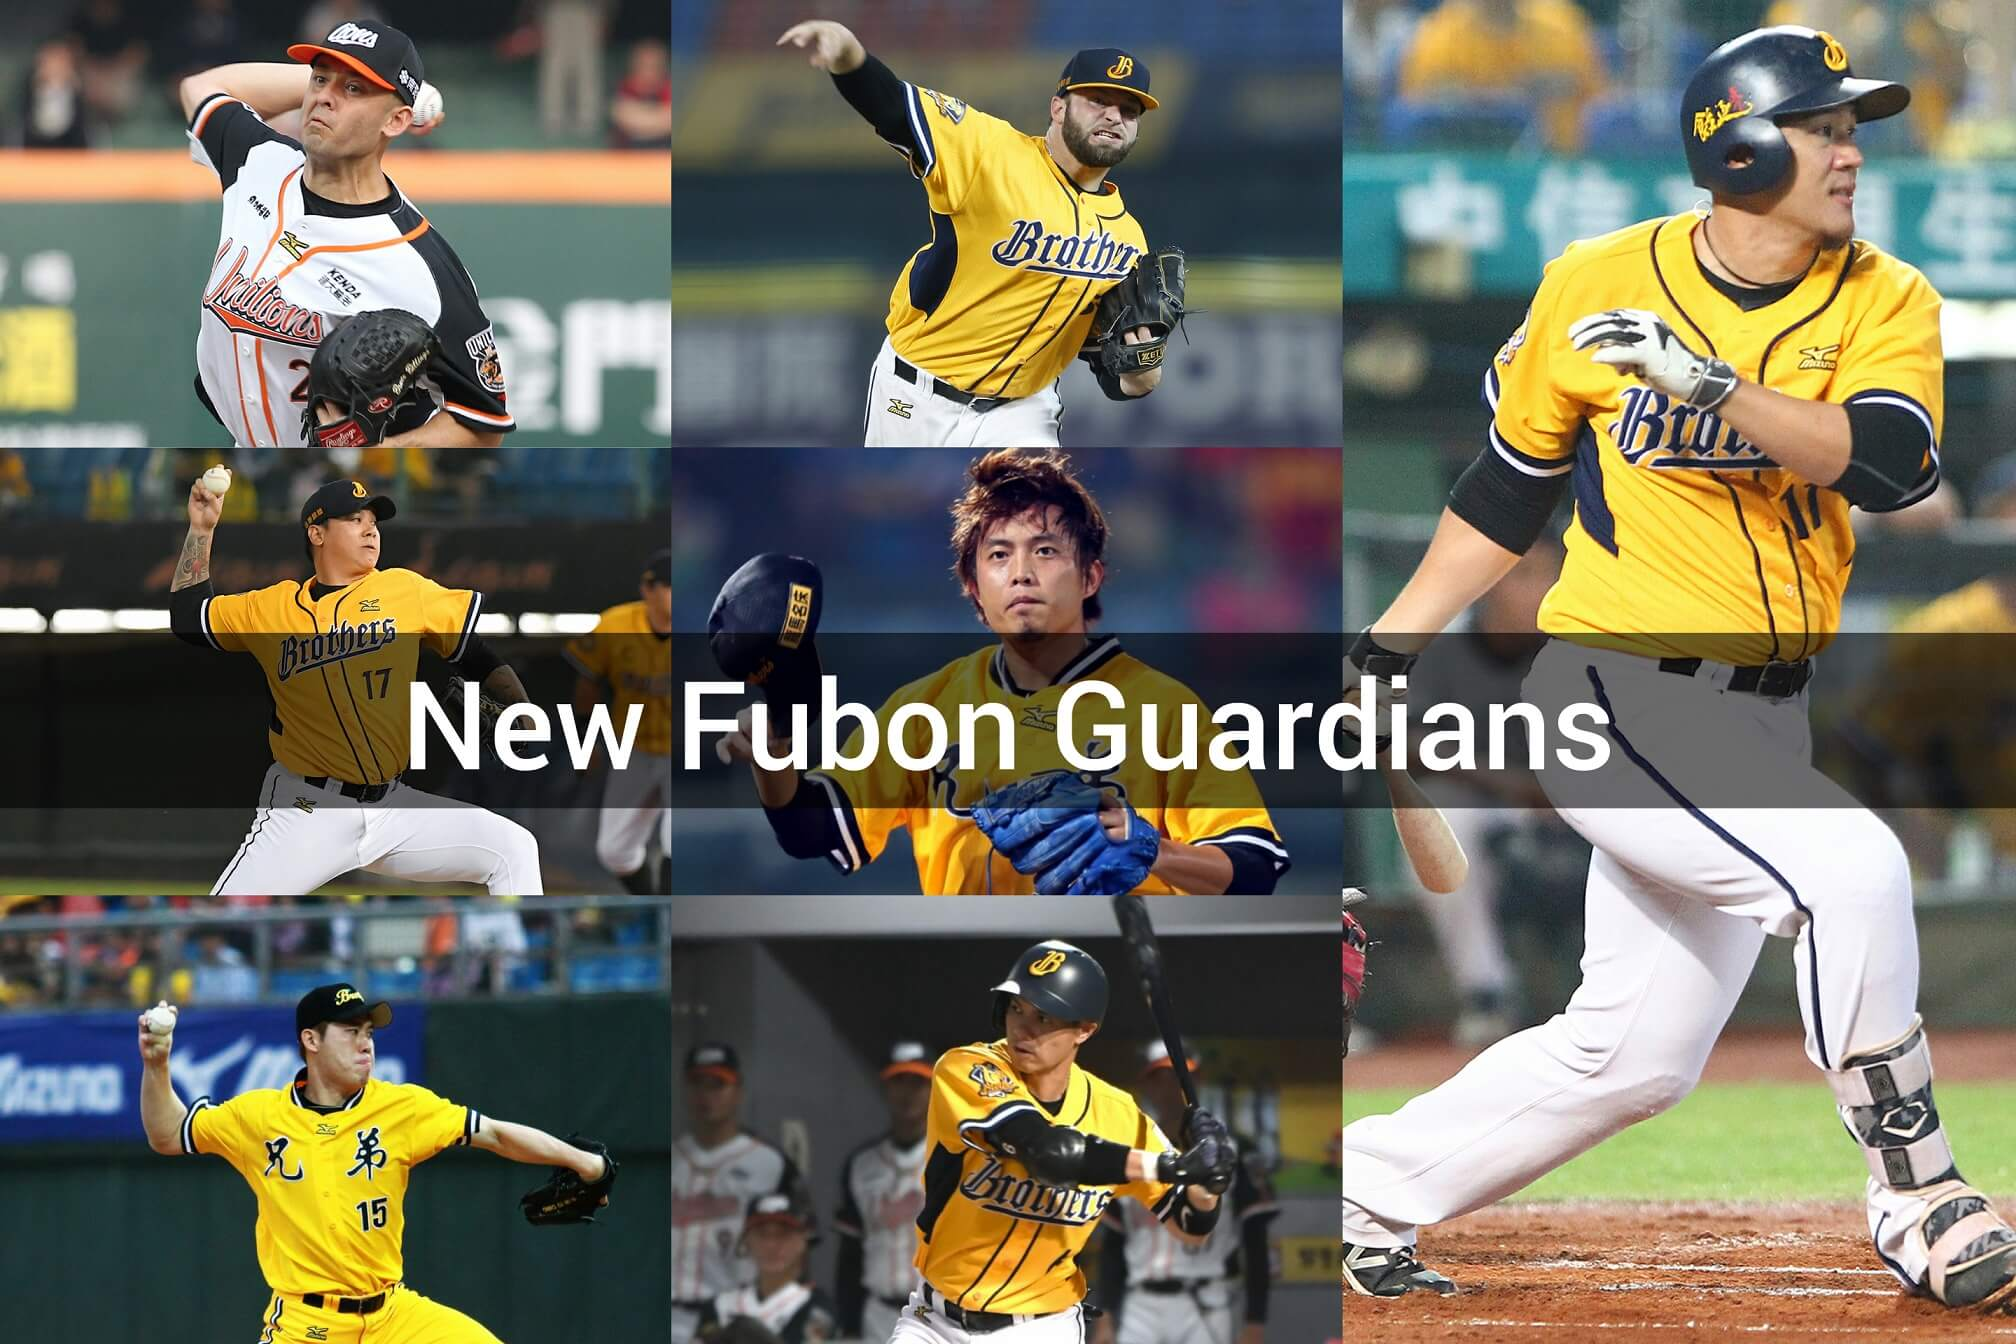 Fubon guardians sign seven players in offseason